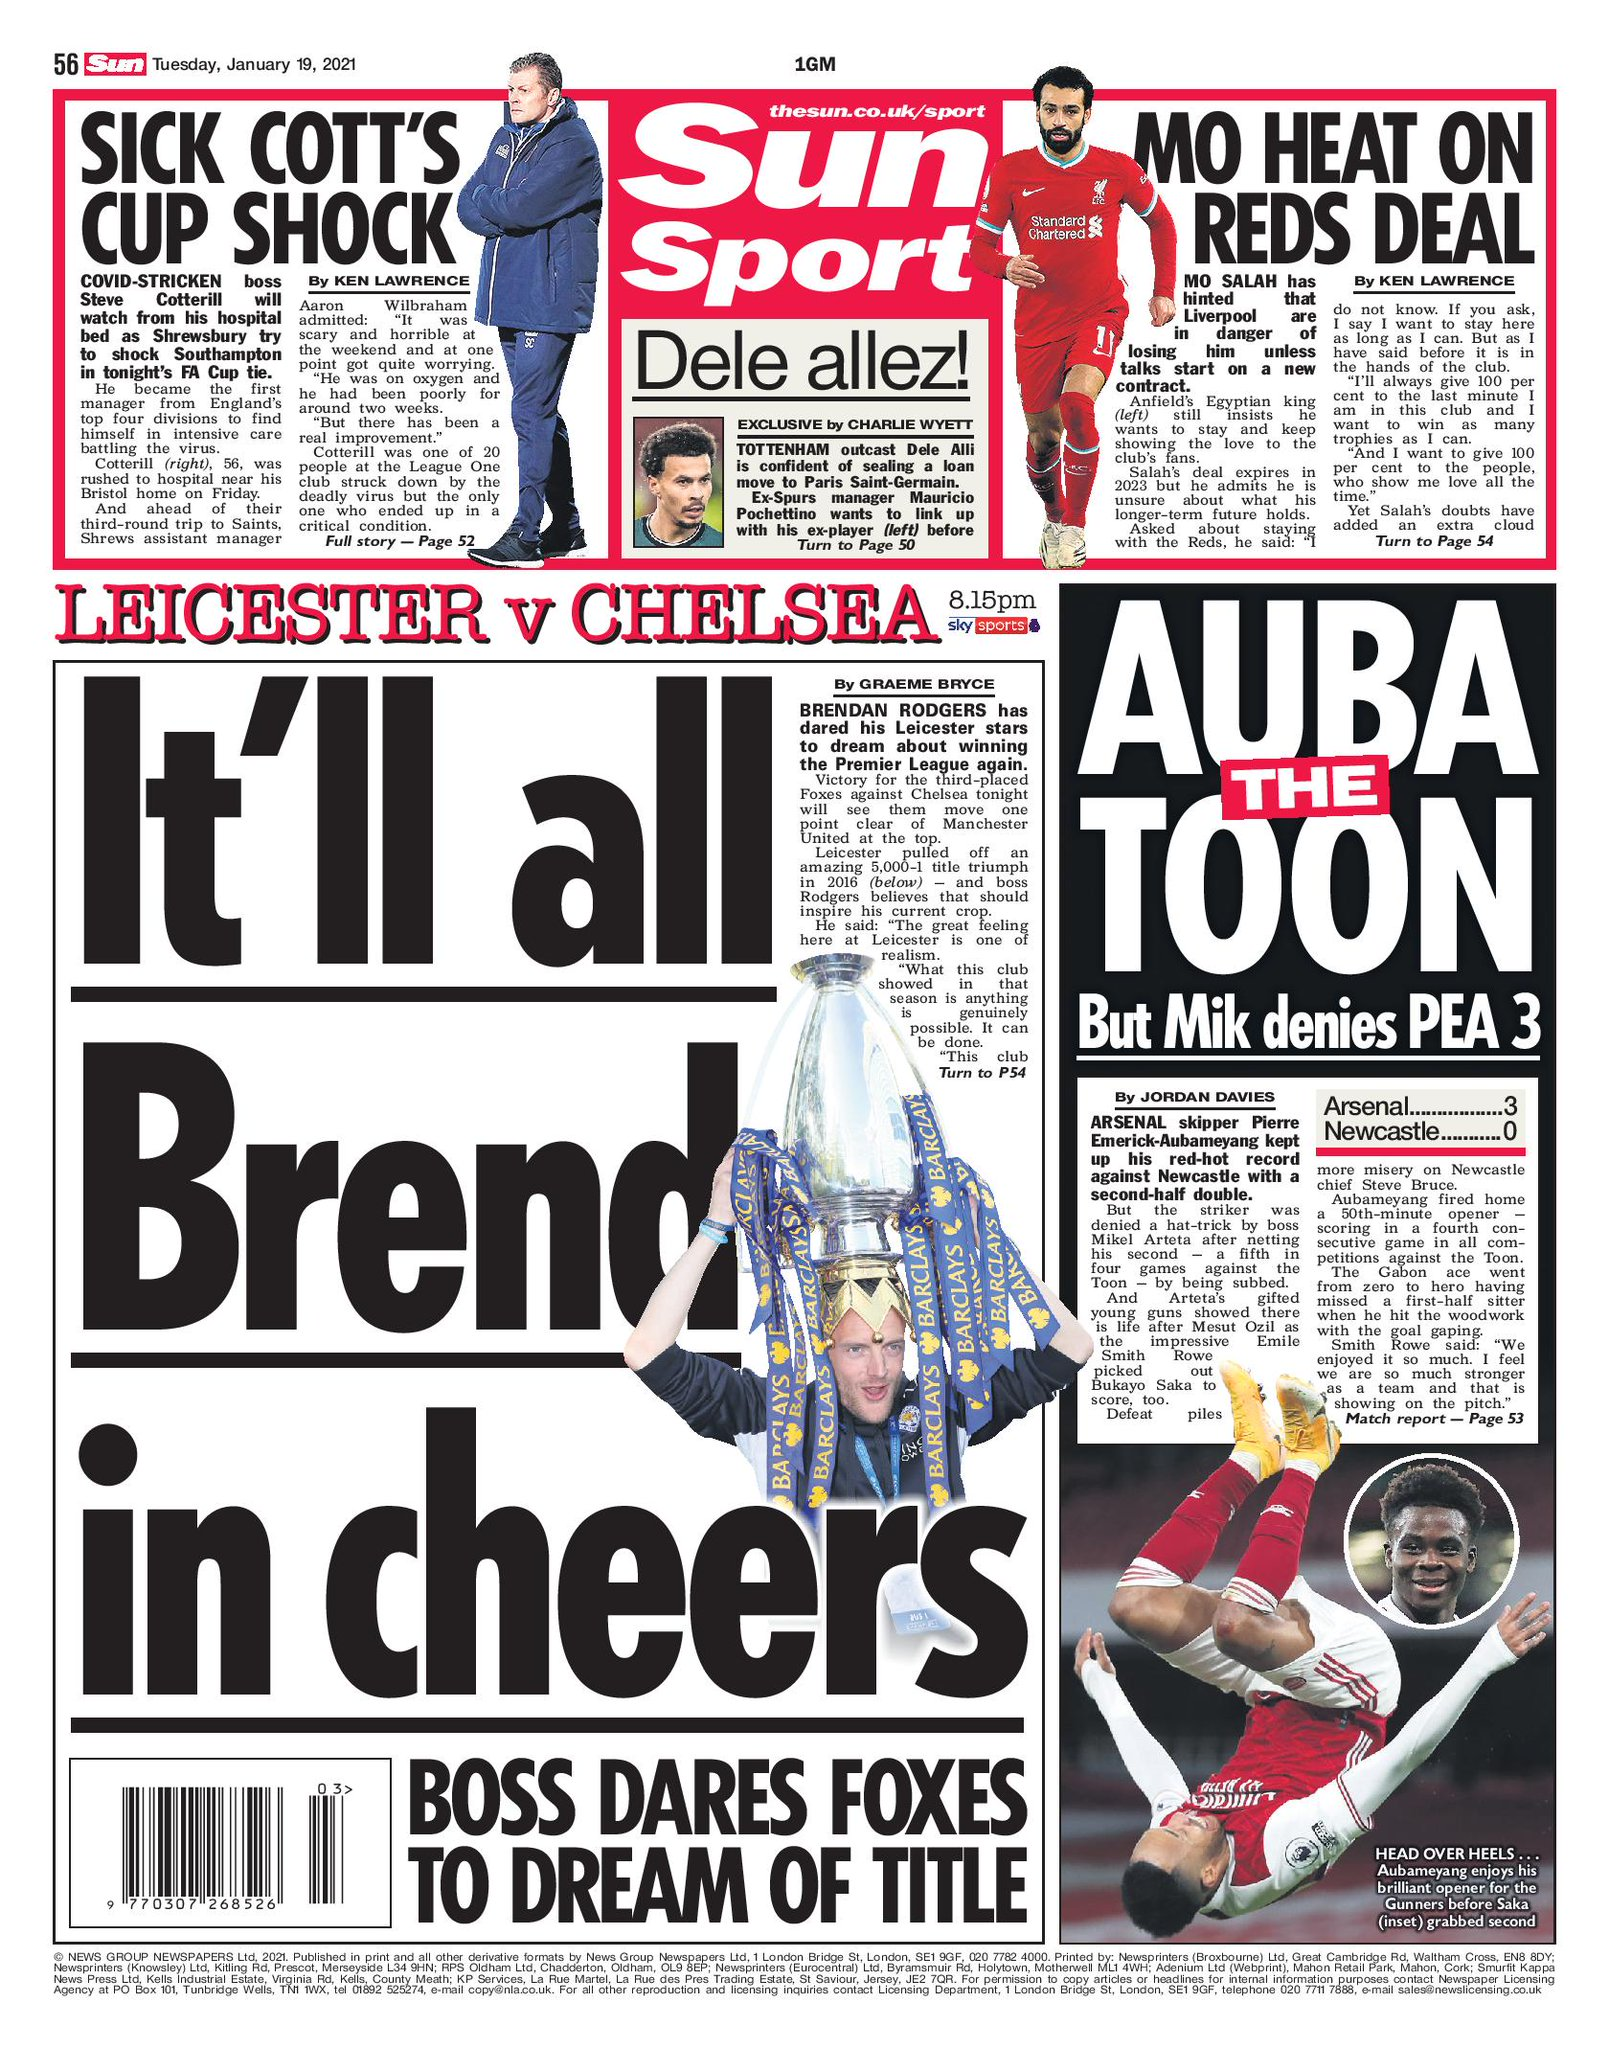 The Sun's cover